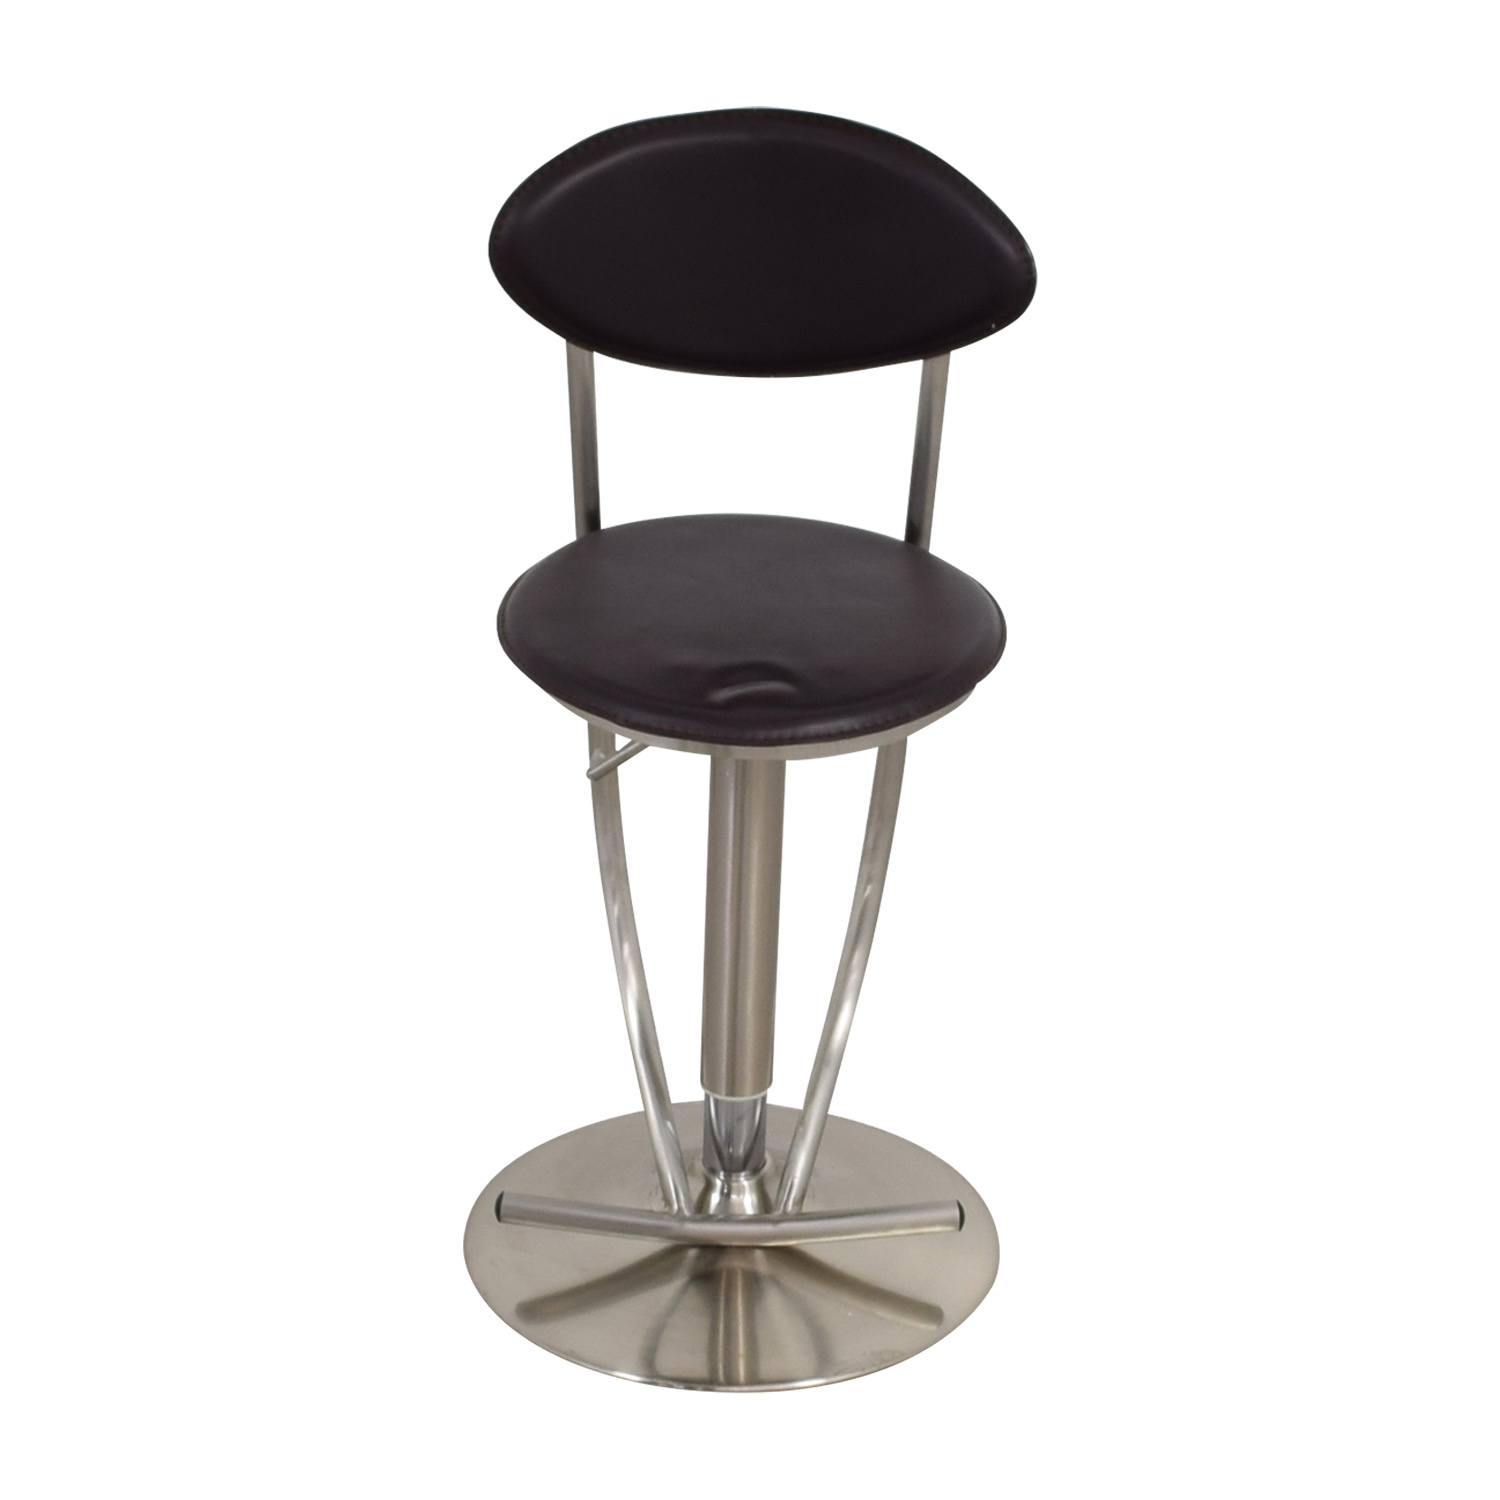 Circular Brown & Metal Stool Chocolate/Brown